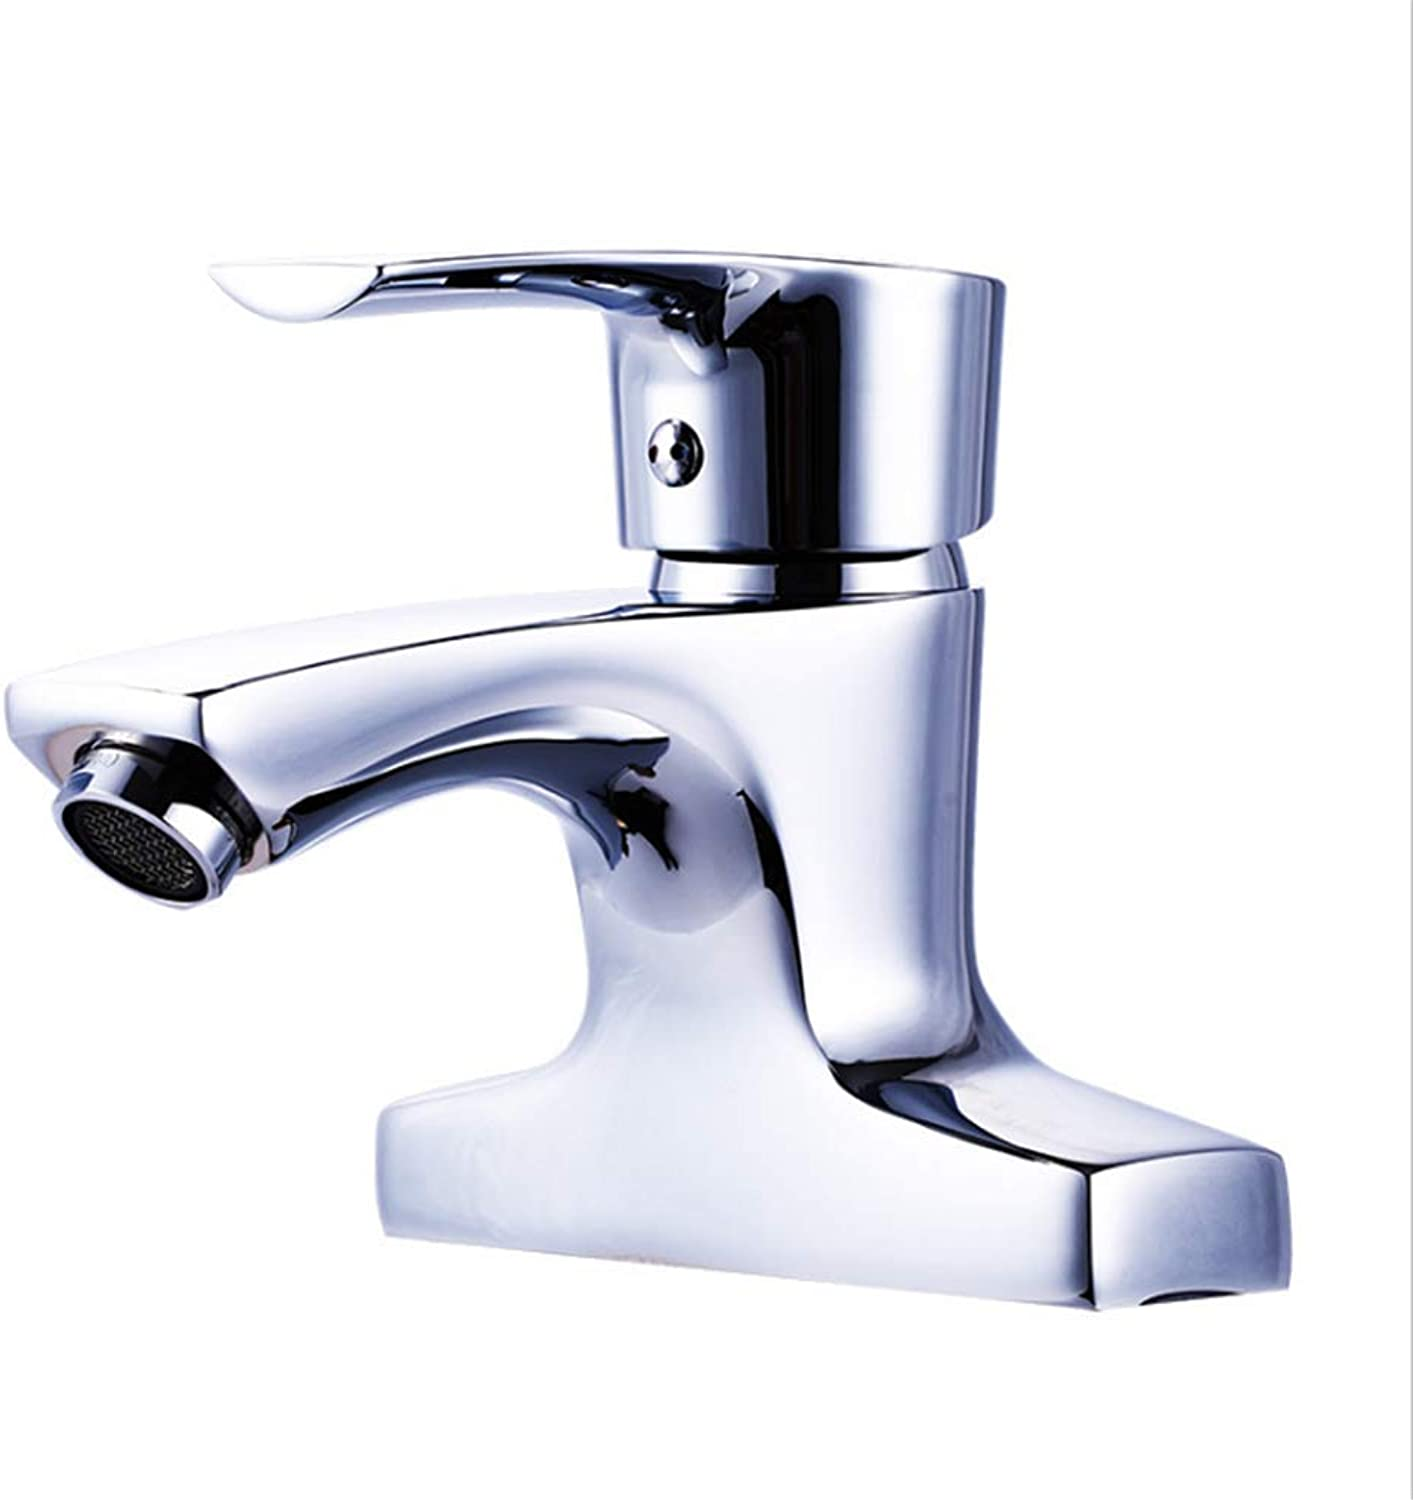 Counter Drinking Designer Archbathroom Copper Basin Cold and Hot Water Faucet Washbasin Mixing Valve